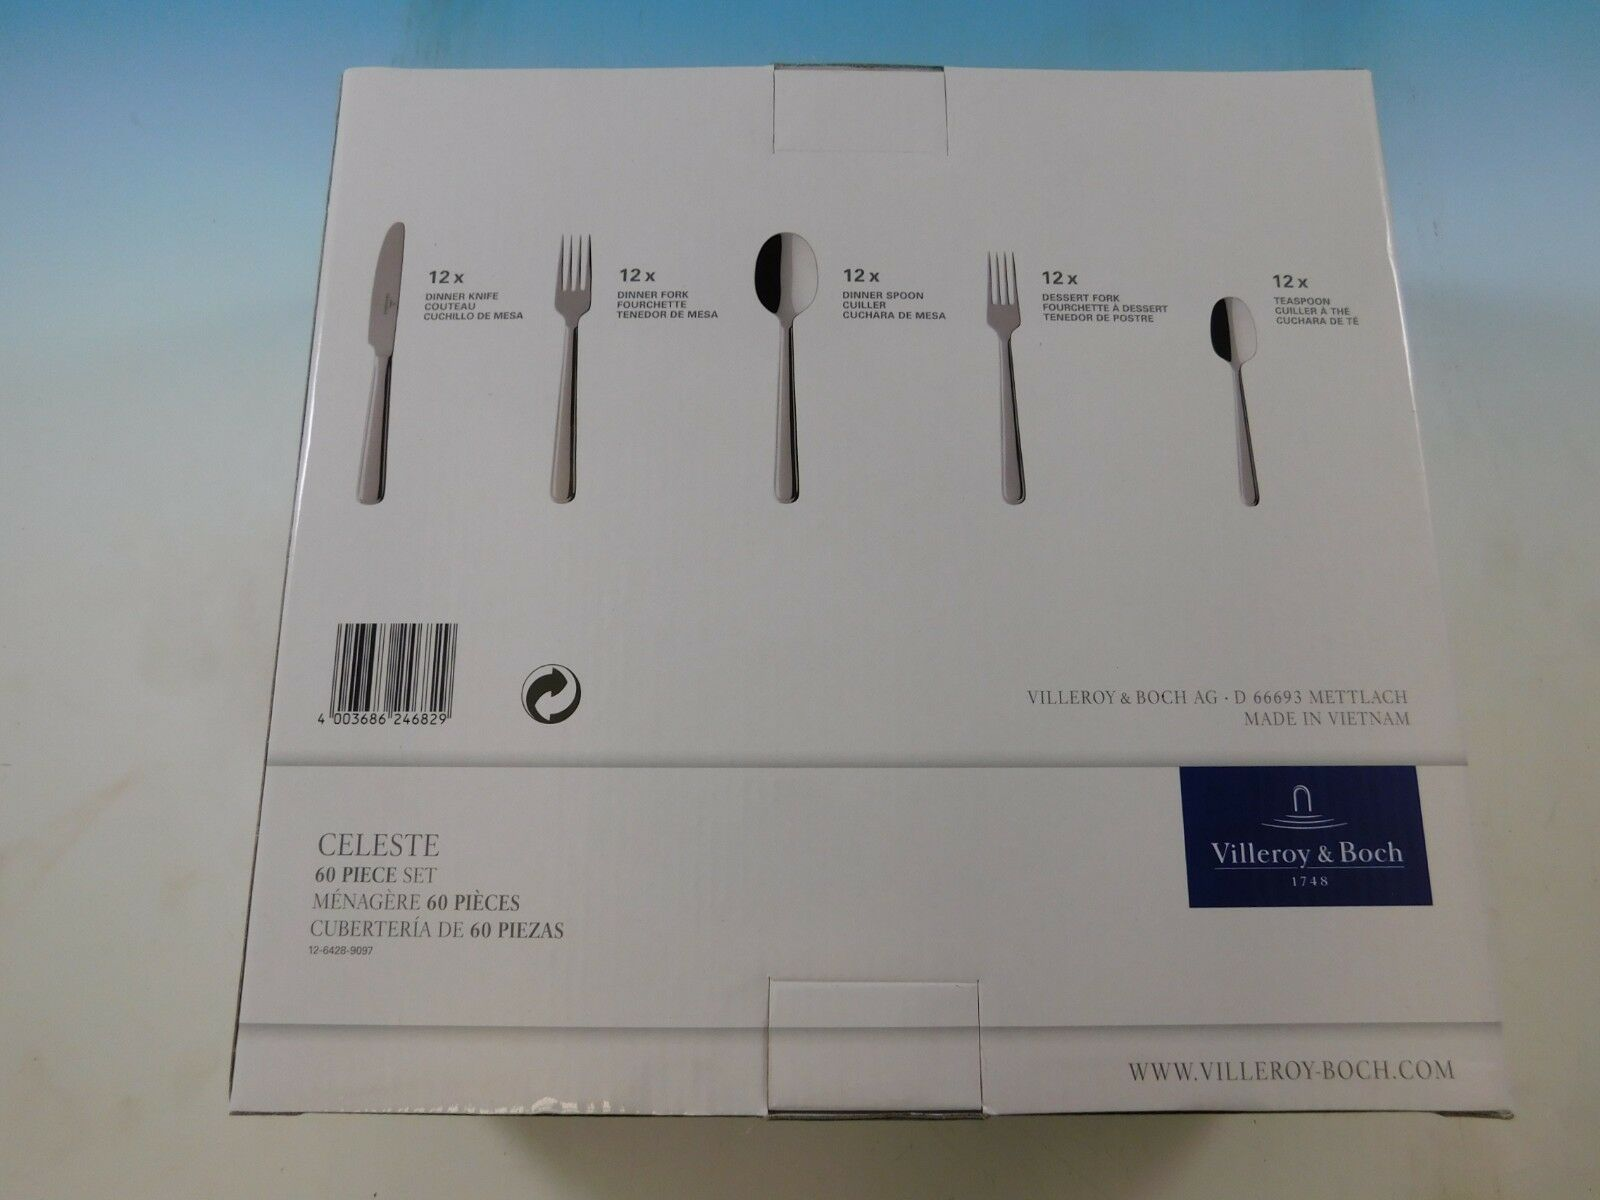 Celeste by Villeroy & Boch Stainless Steel Flatware Set Service Service Service 60 Pieces New 475ccb